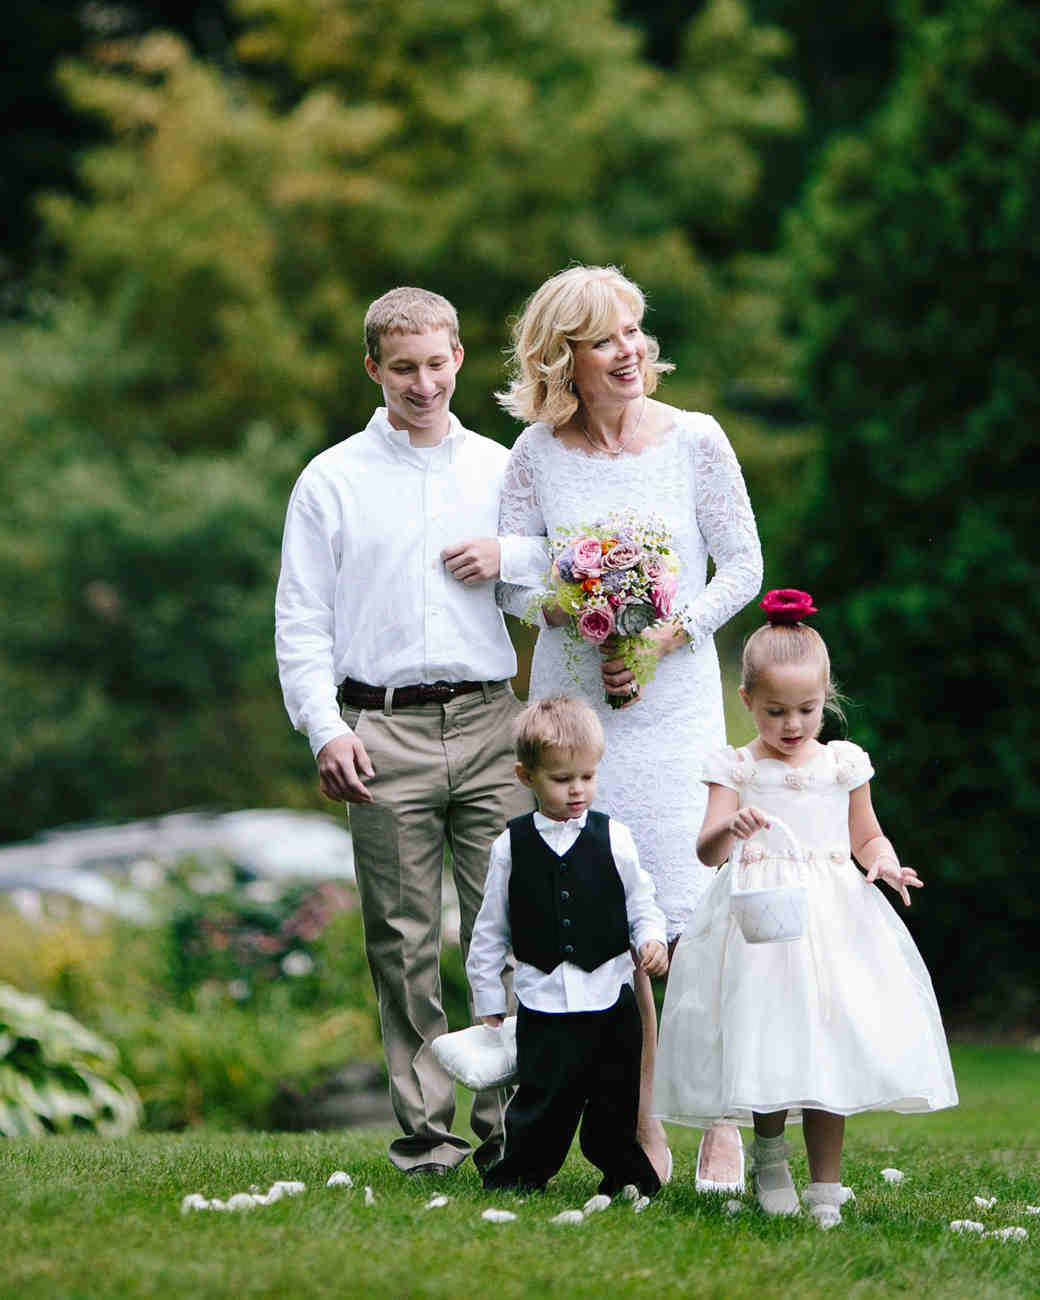 Wedding Family Picture Guide: How To Include Your Children In Your Wedding